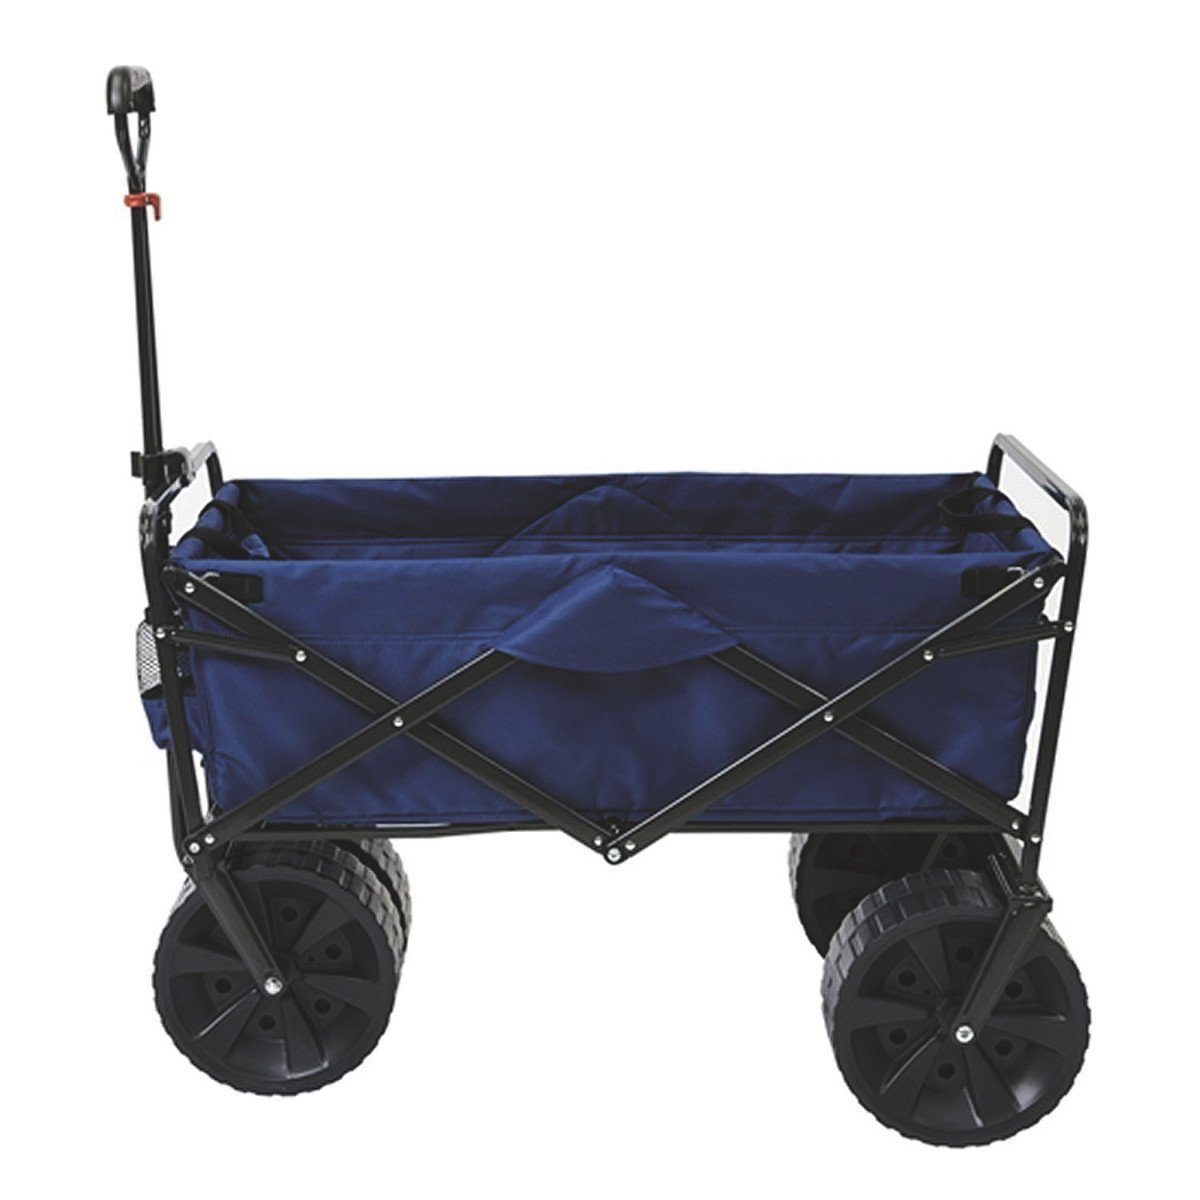 Collapsible Wagon Sports Folding Utility Cart Home